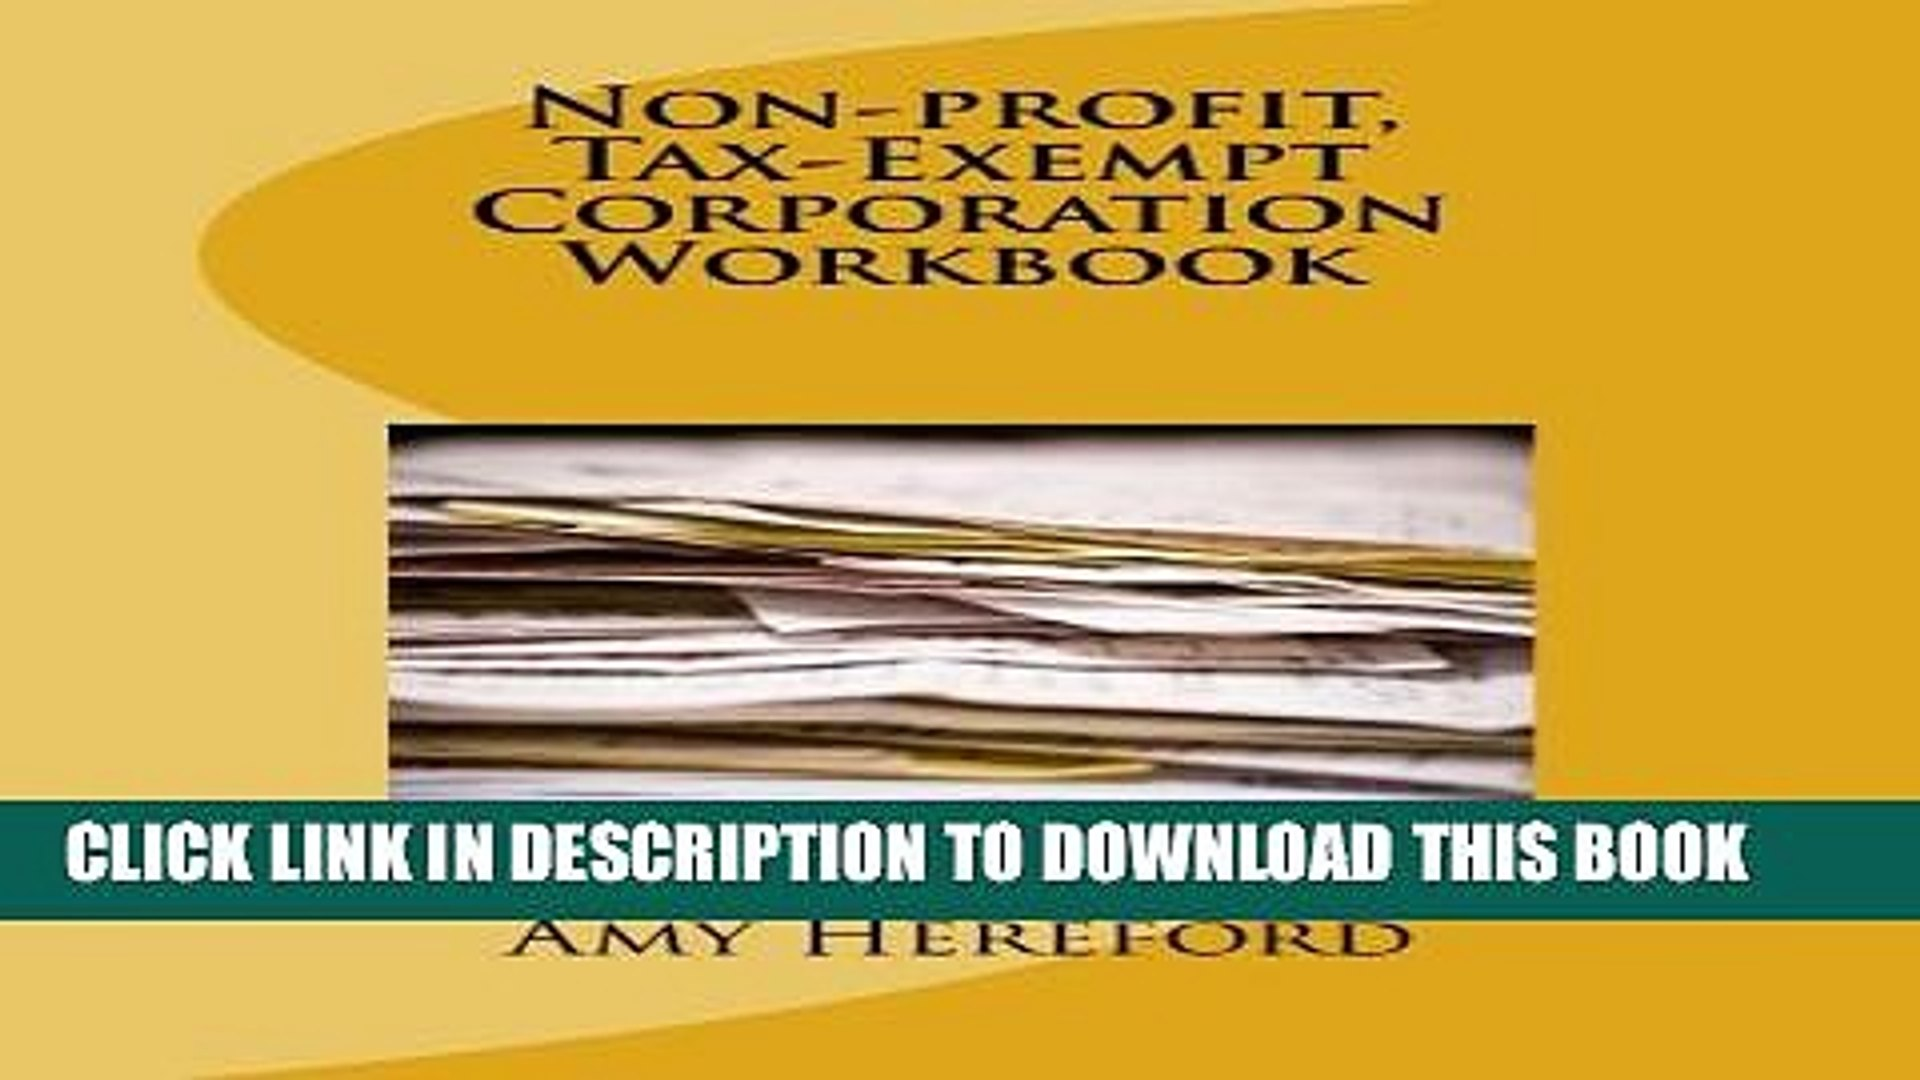 Collection Book Non-profit, Tax-Exempt Corporation Workbook